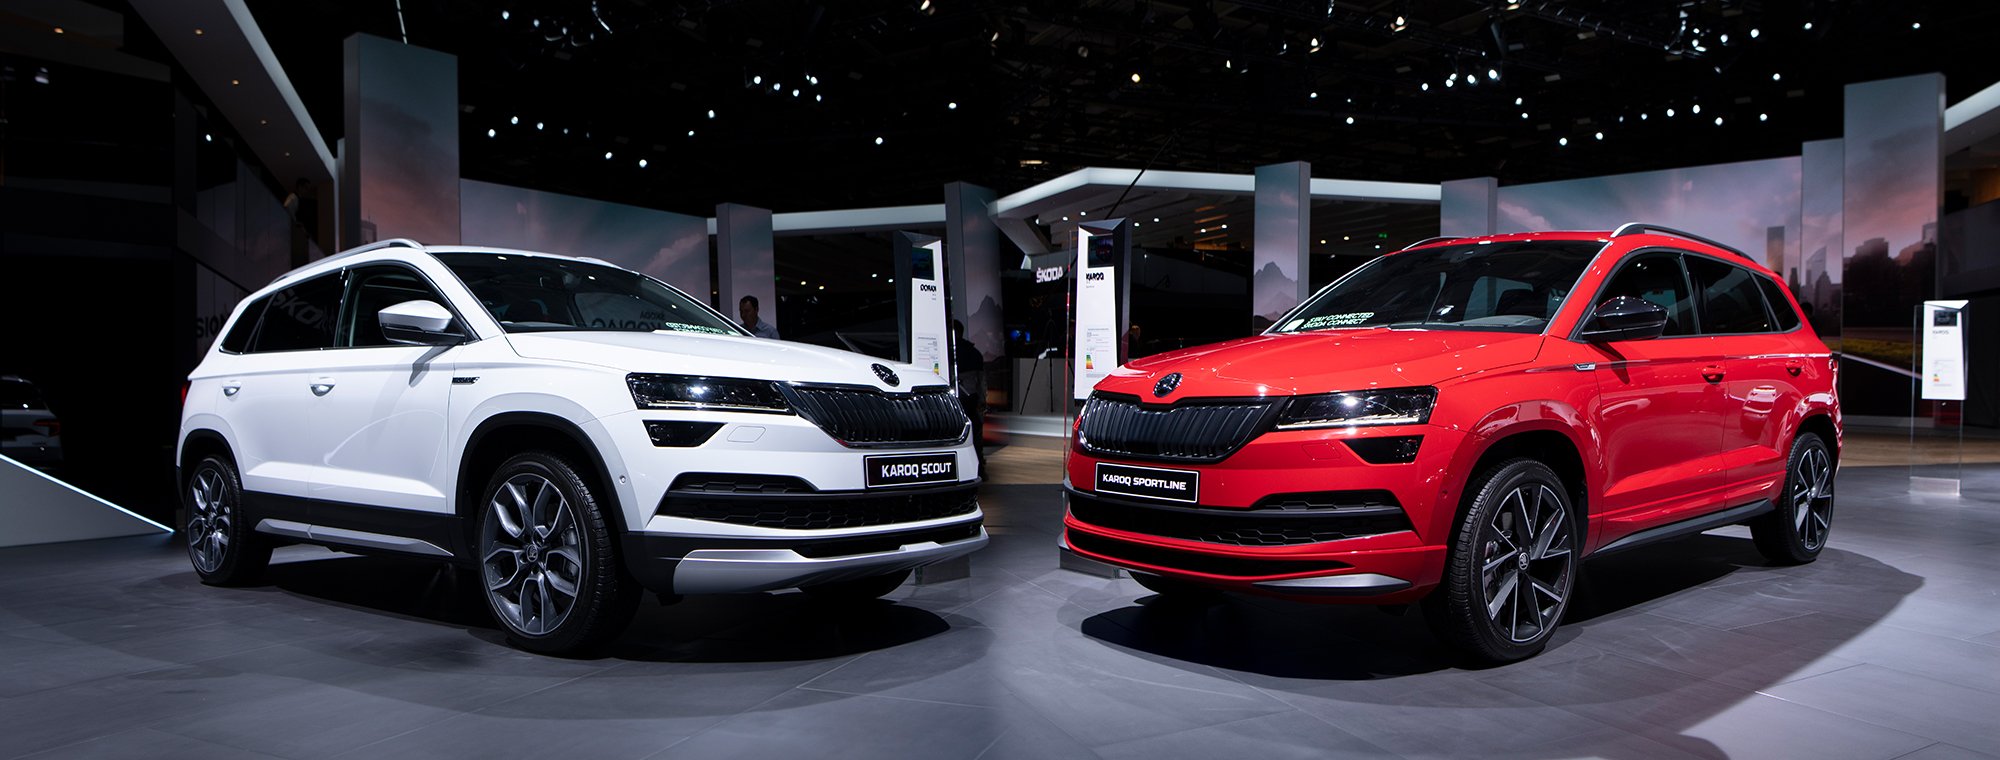 The Skoda Karoq Scout Versus The Sportline How To Tell Them Apart Skoda Storyboard